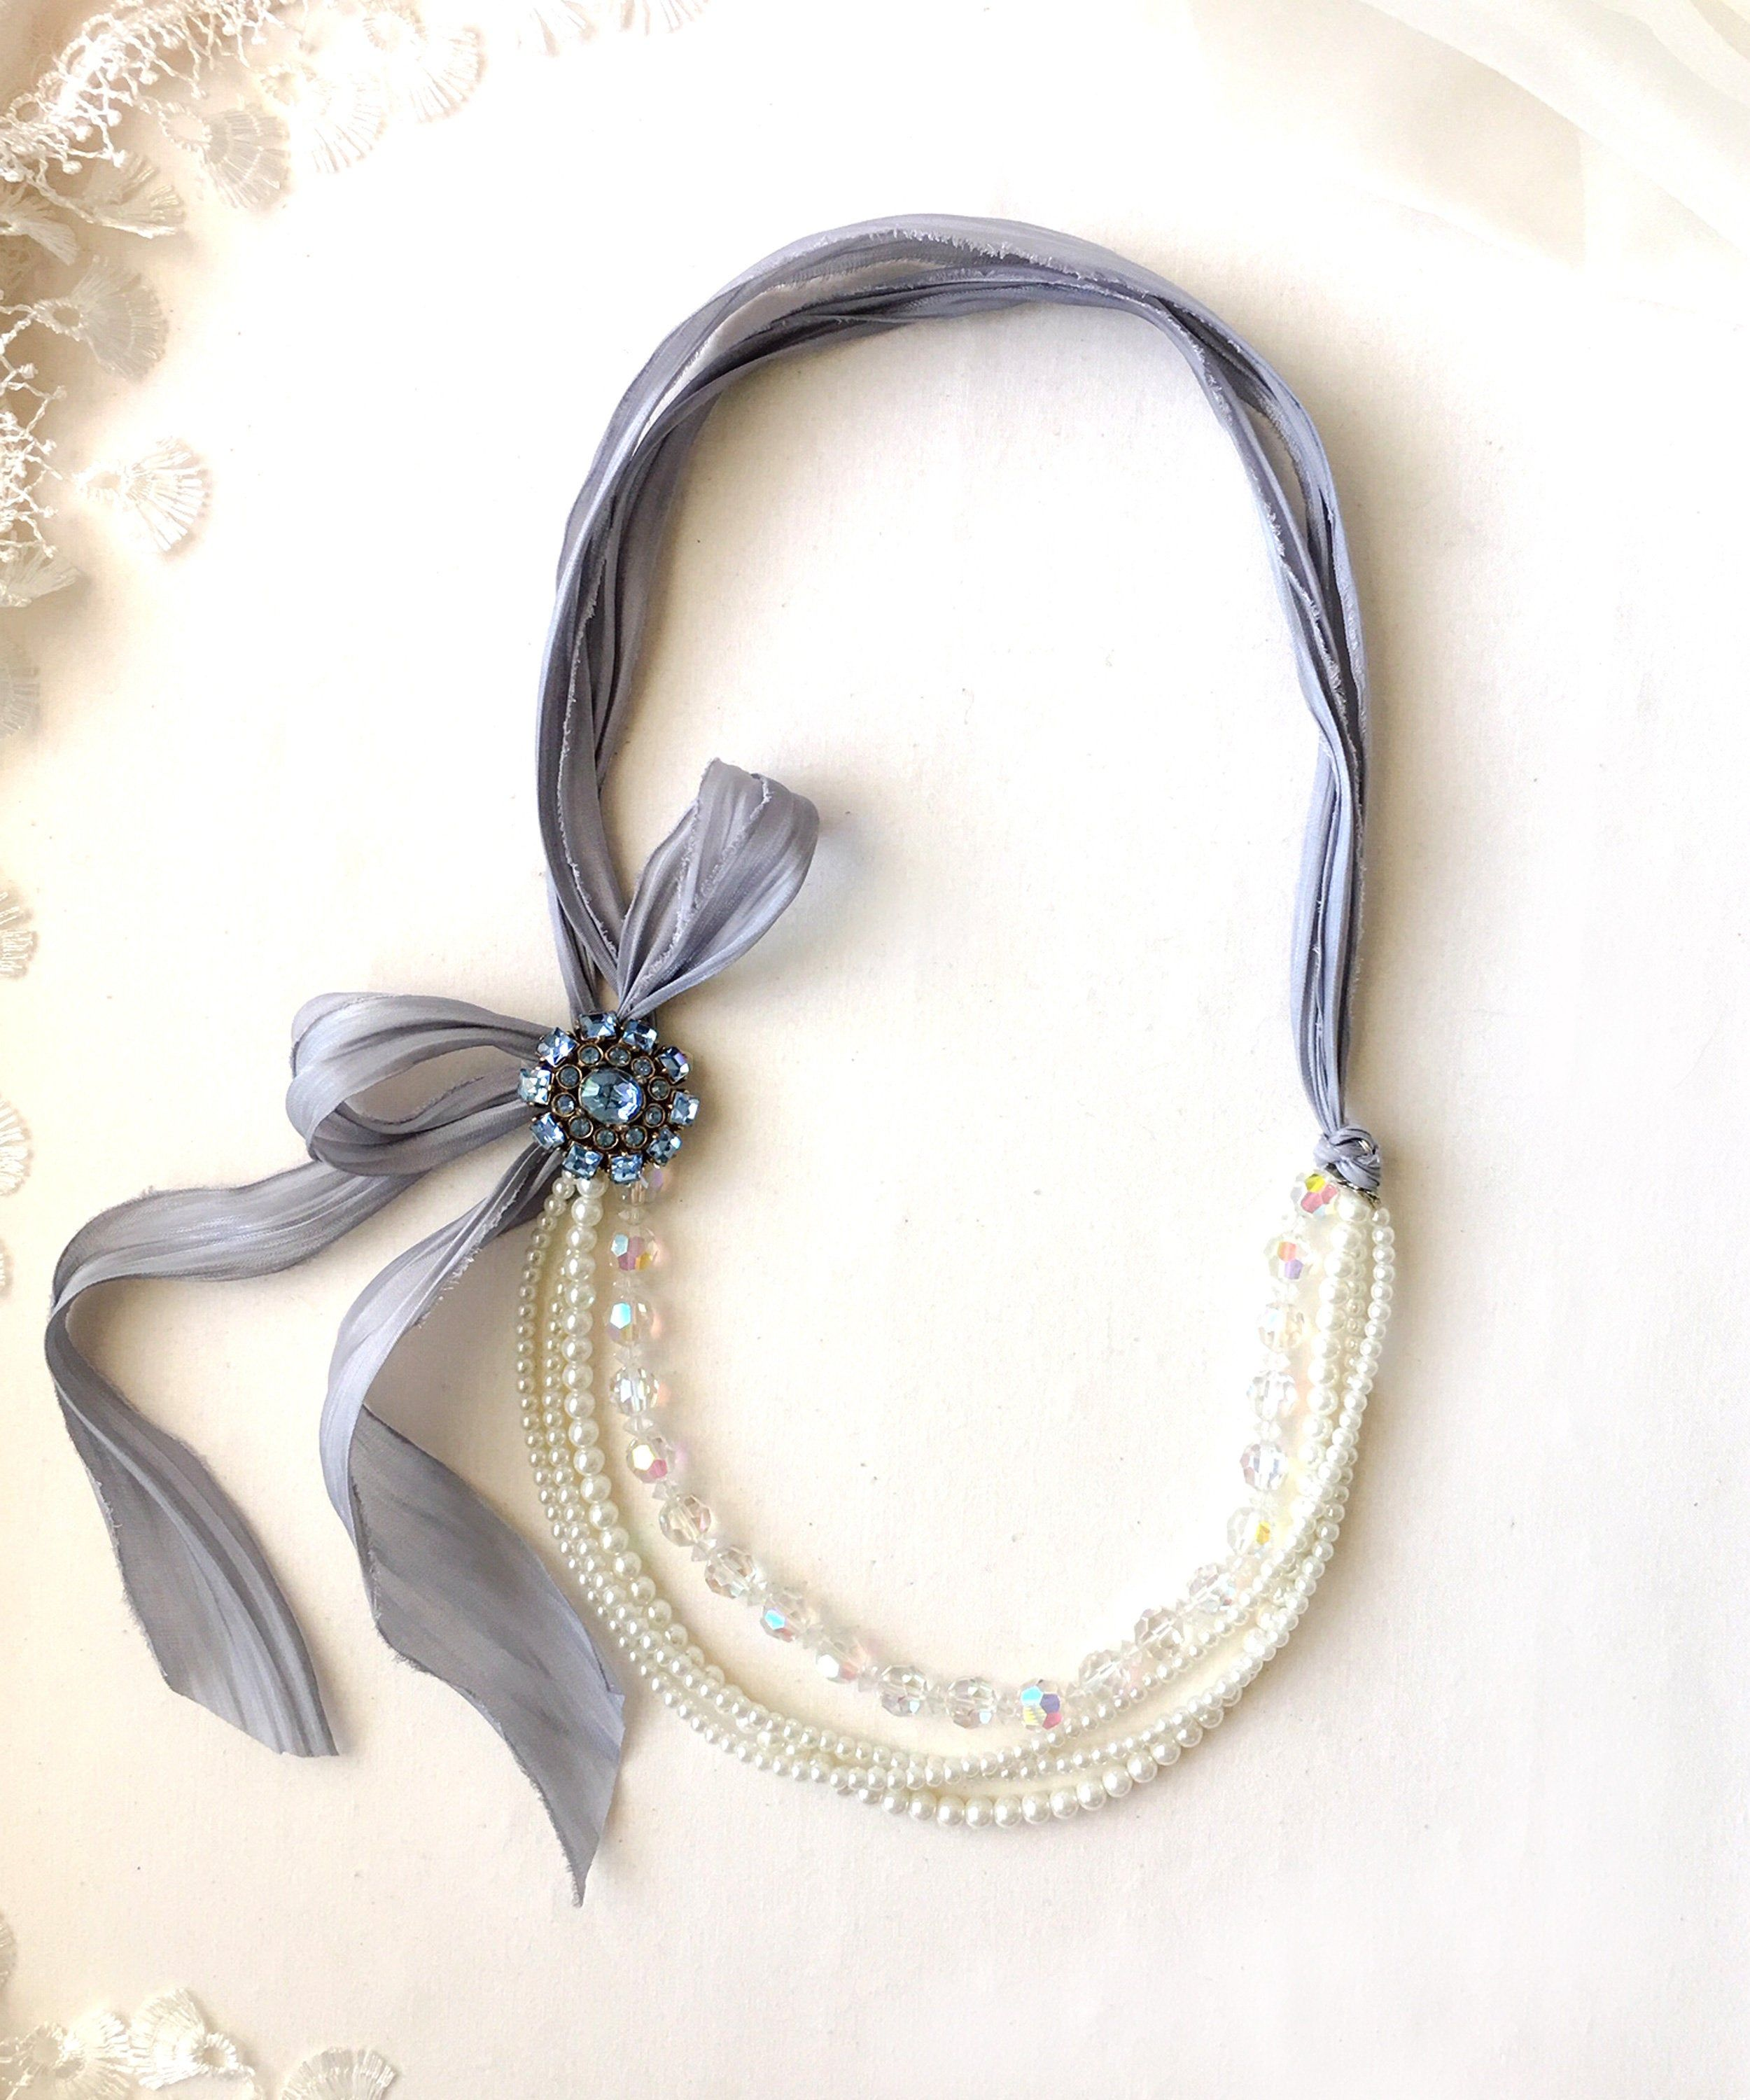 Pearl Bead Necklace With Blue Silk Ribbon And Vintage Brooch Etsy In 2020 Beaded Necklace Ribbon Jewelry Faux Pearl Necklace